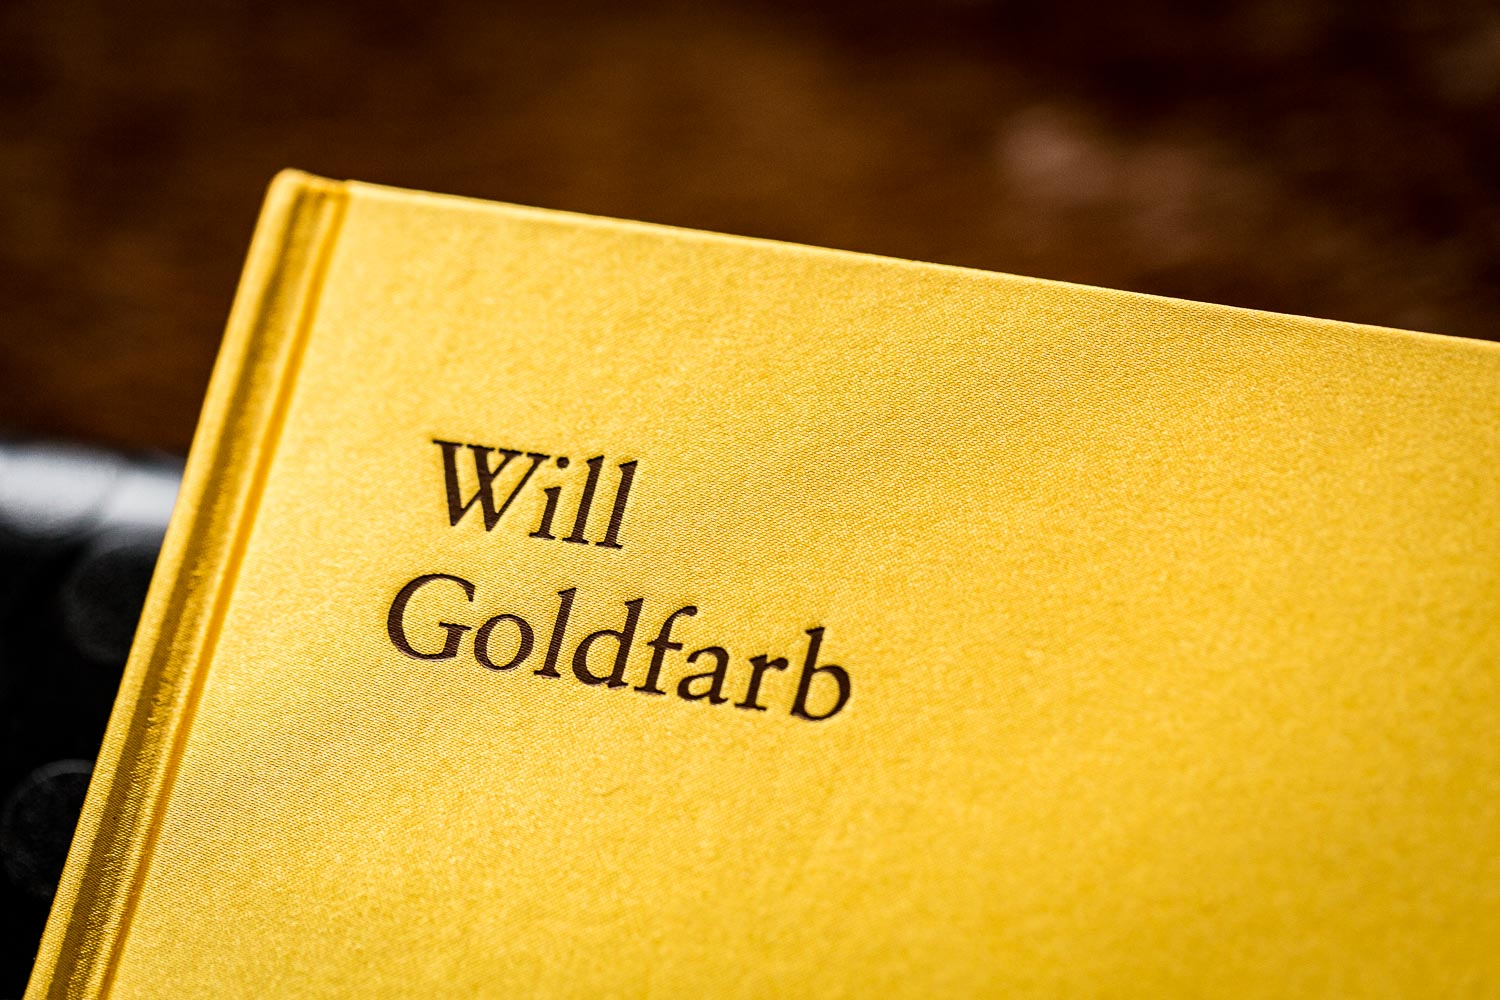 Will Goldfarb